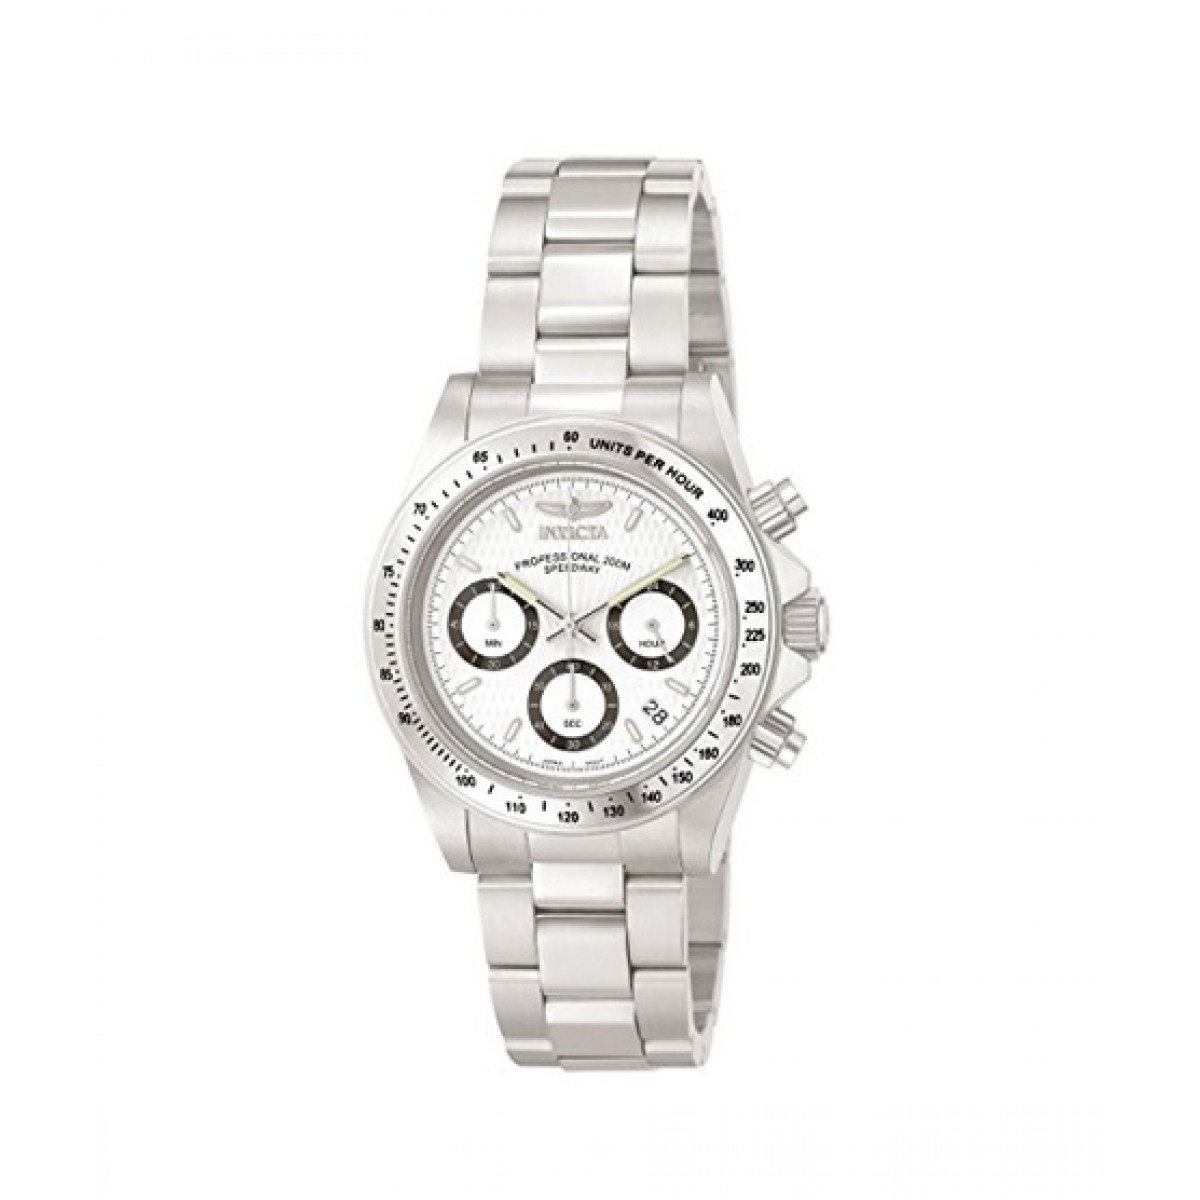 Invicta Speedway Men's Watch Silver (9211)